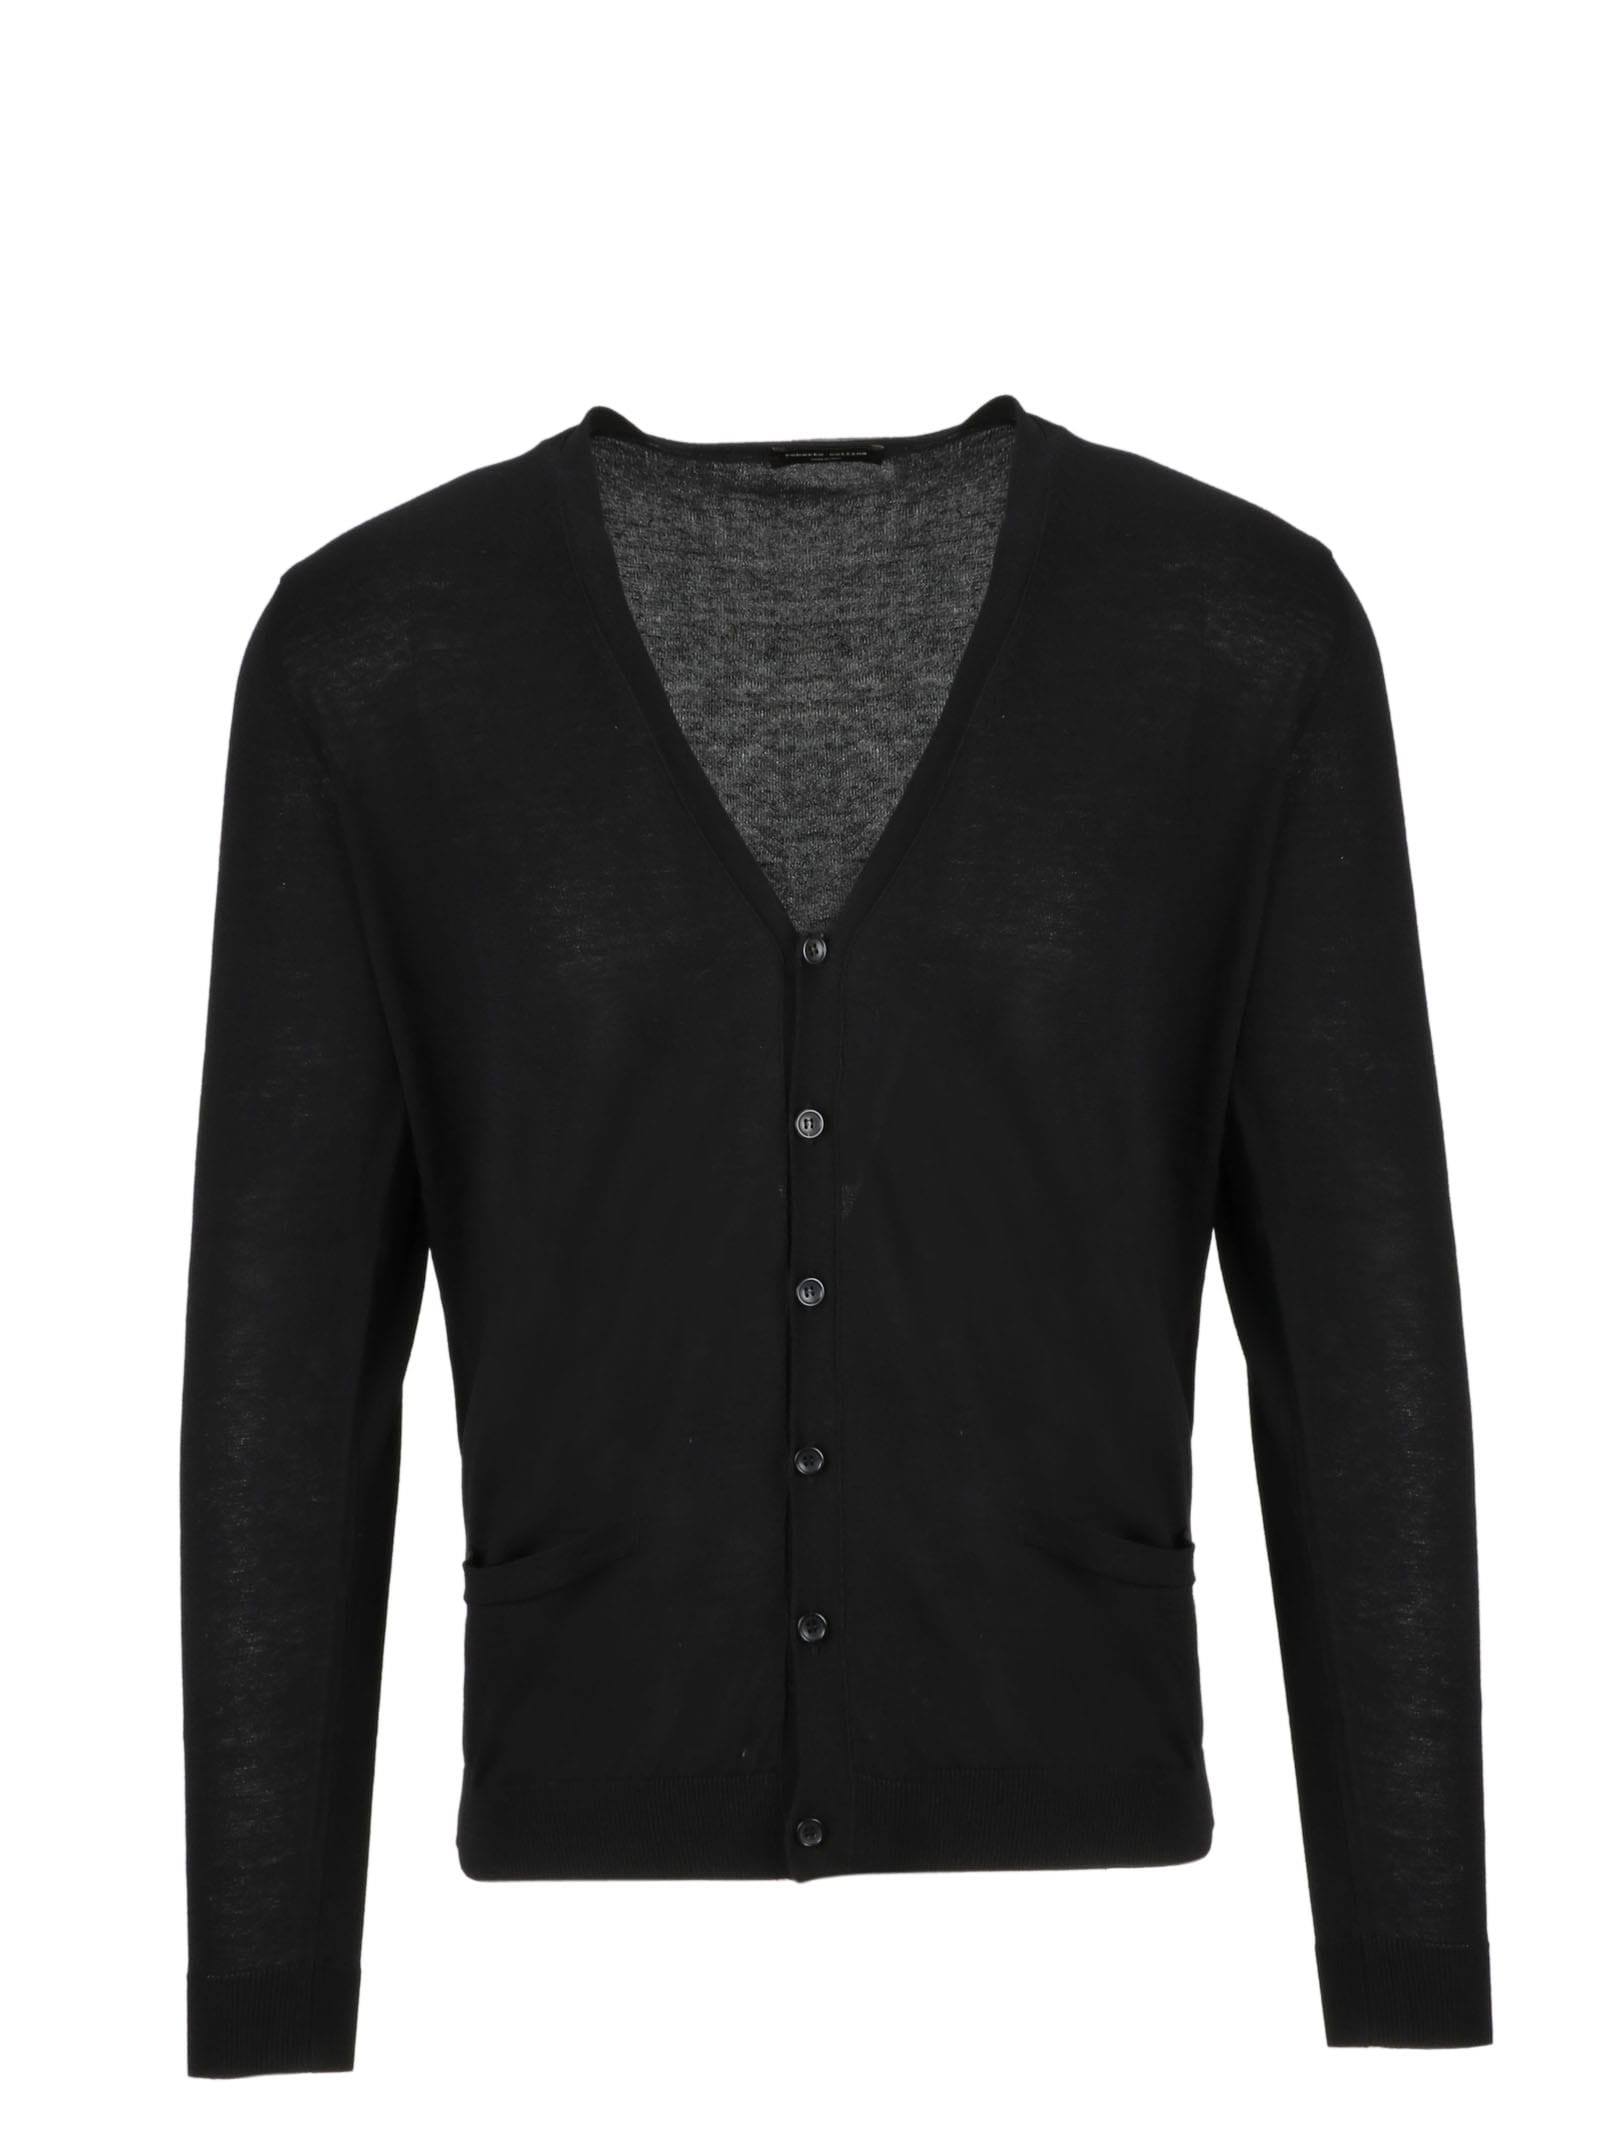 Roberto Collina Buttoned Cardigan